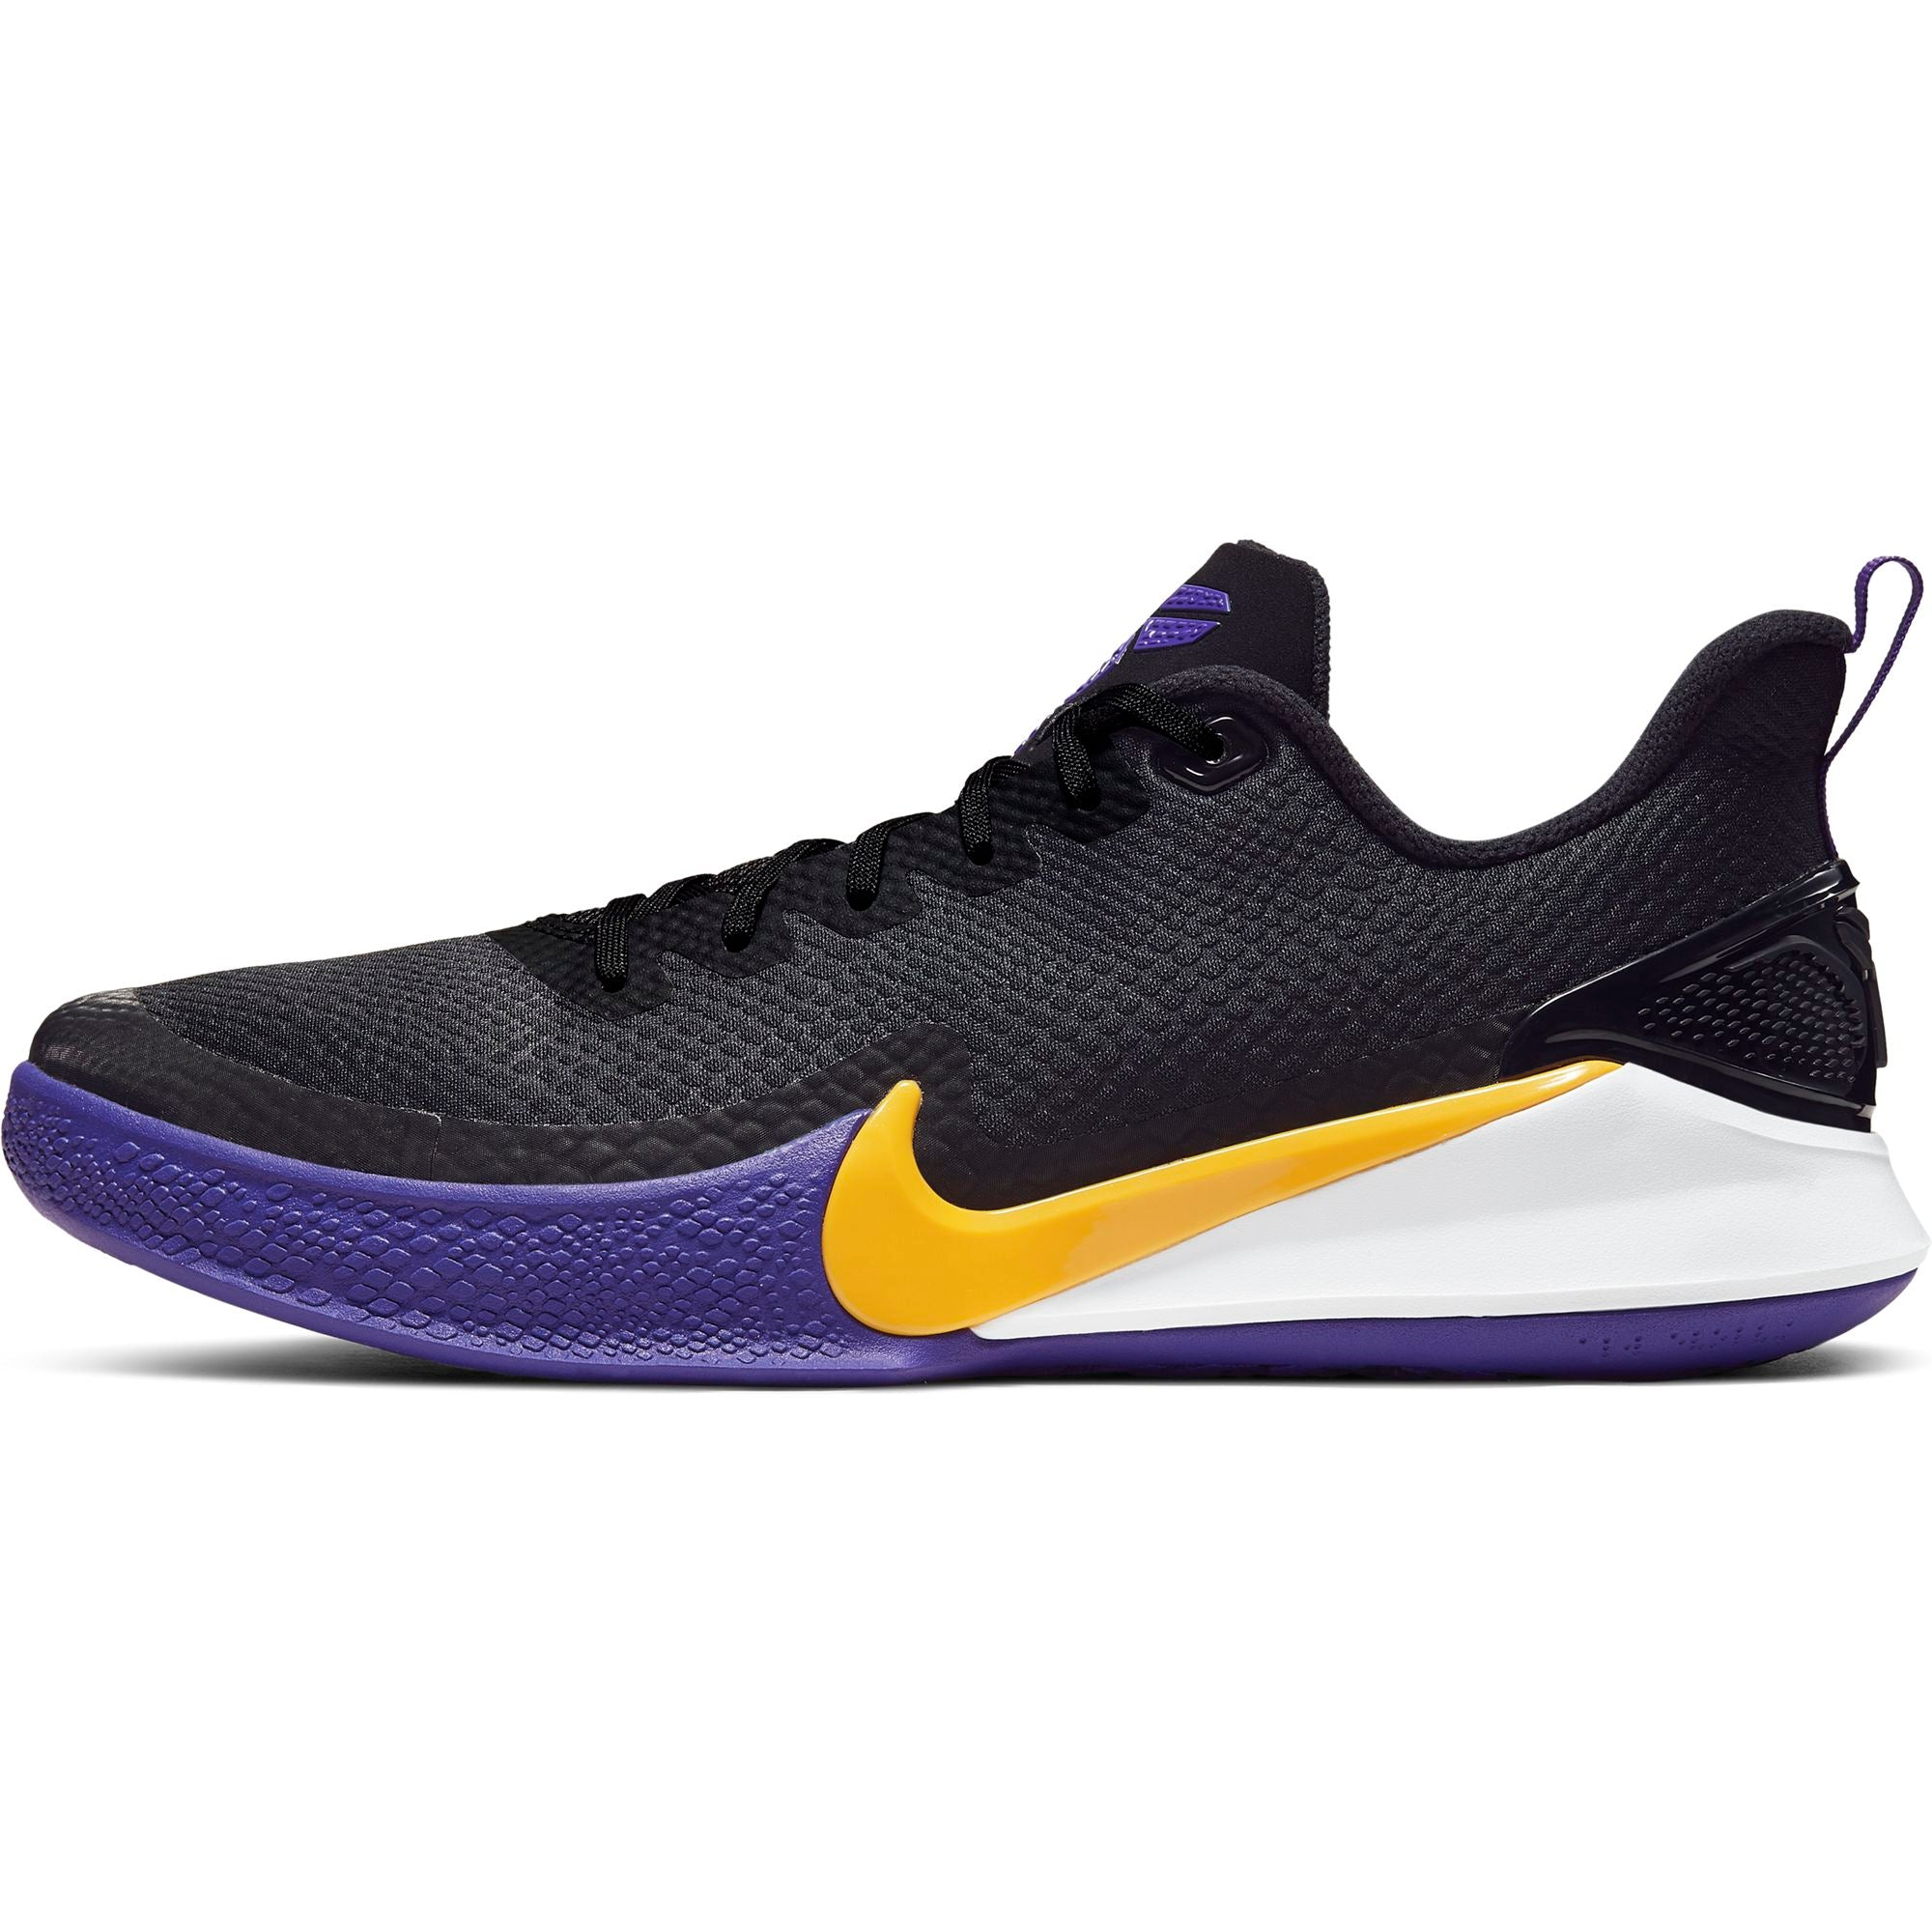 Nike Basketball Mamba Focus Low Basketball Shoe - NK-AJ5899-005